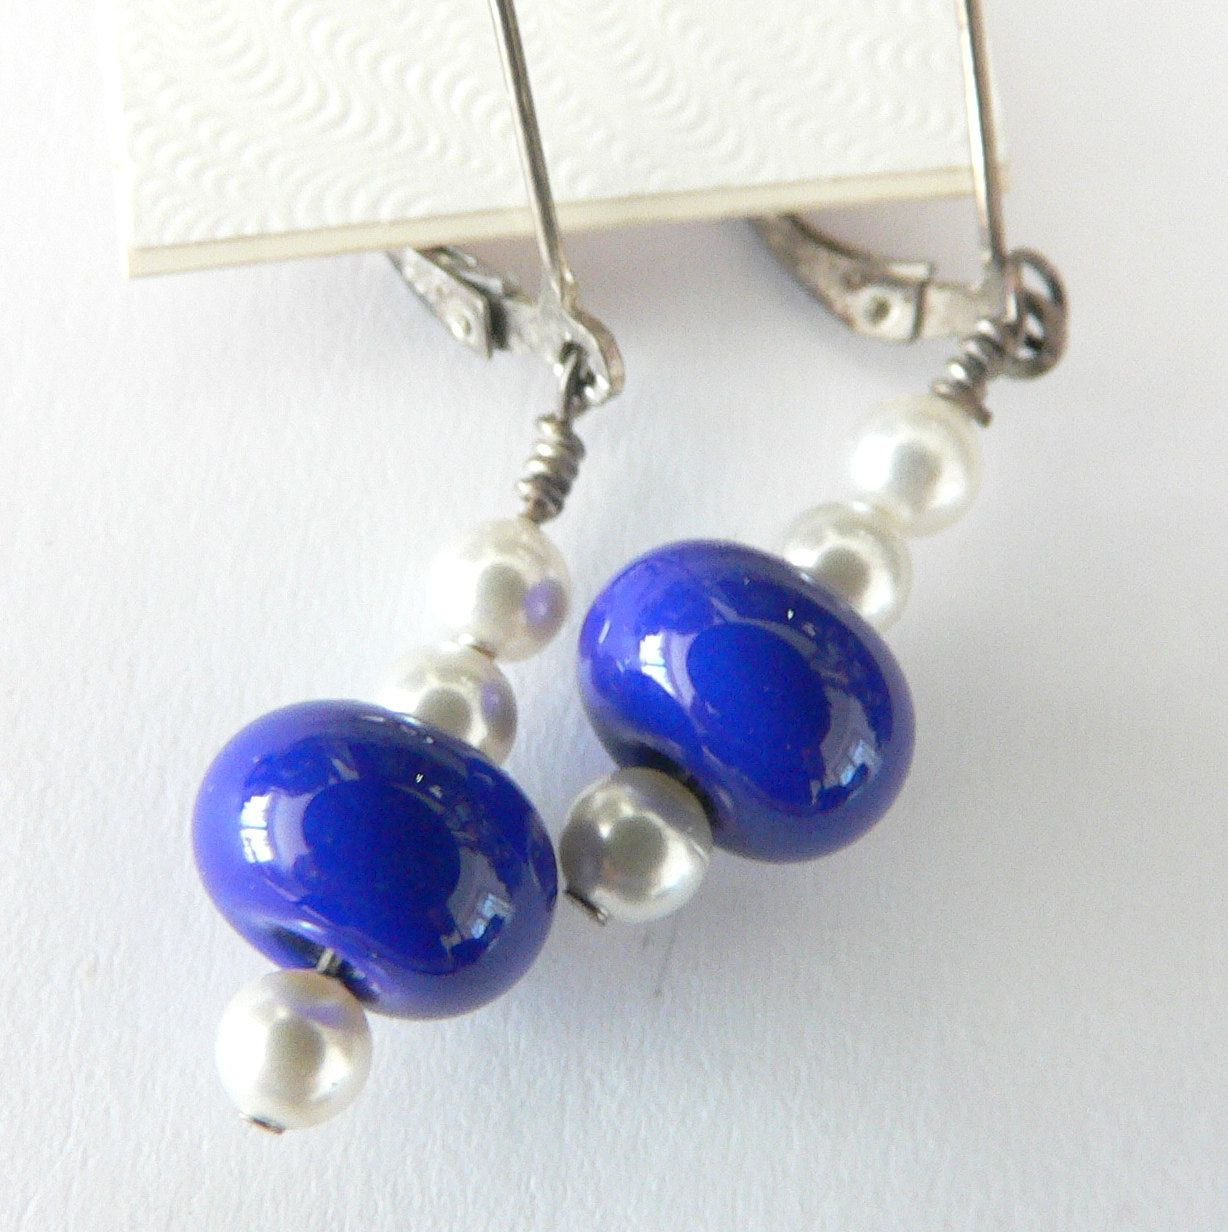 Maineteam My lampwork beads of lapis blue and small pearls sterling silver dangle earrings. $15.00, via Etsy.